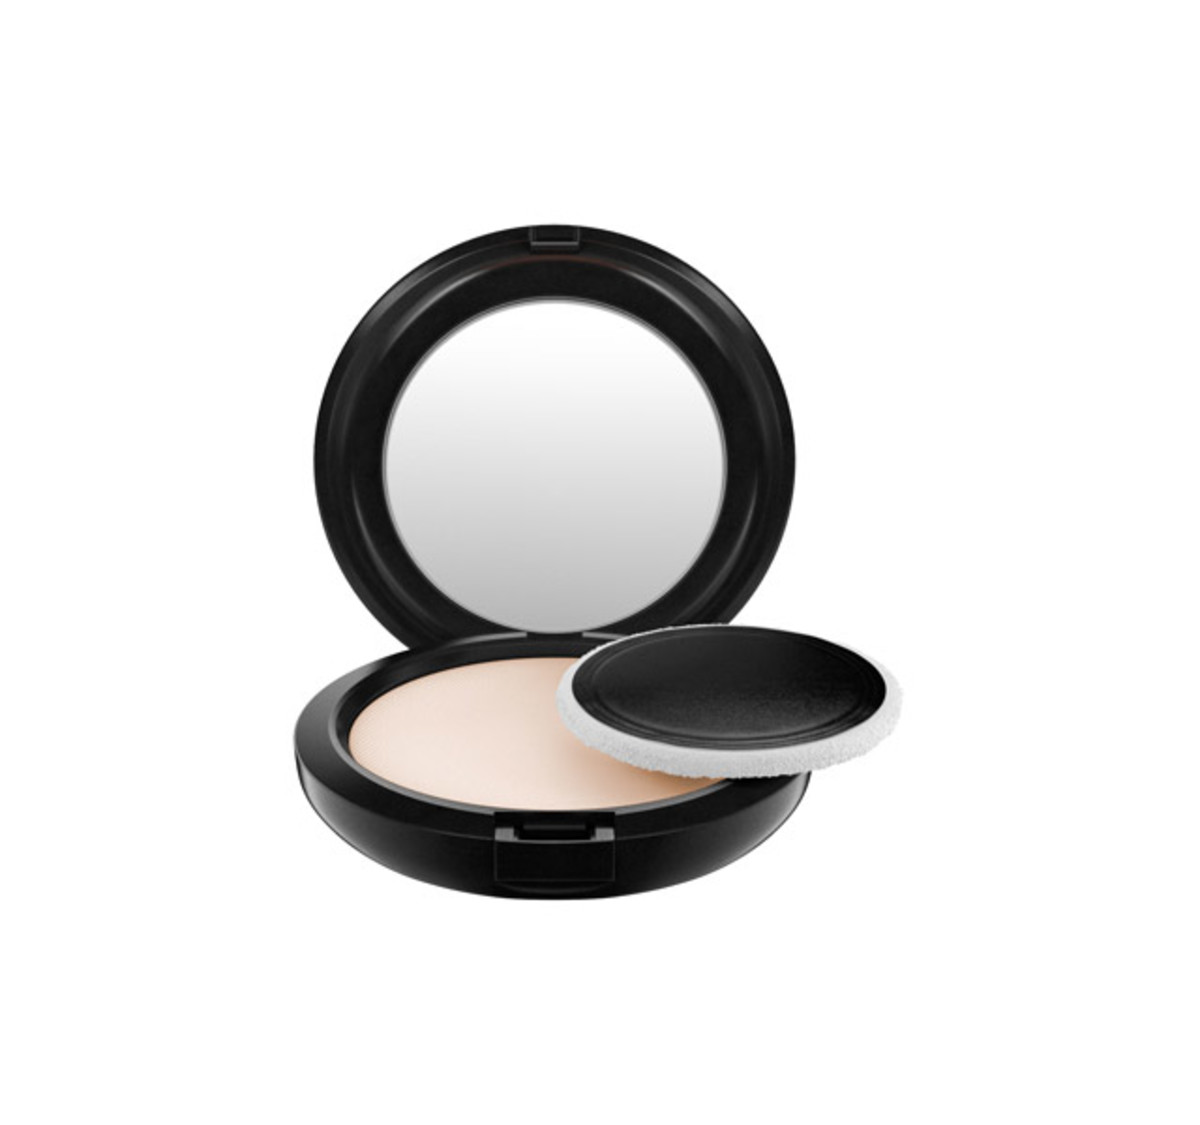 #8 MAC's Blot Powder.